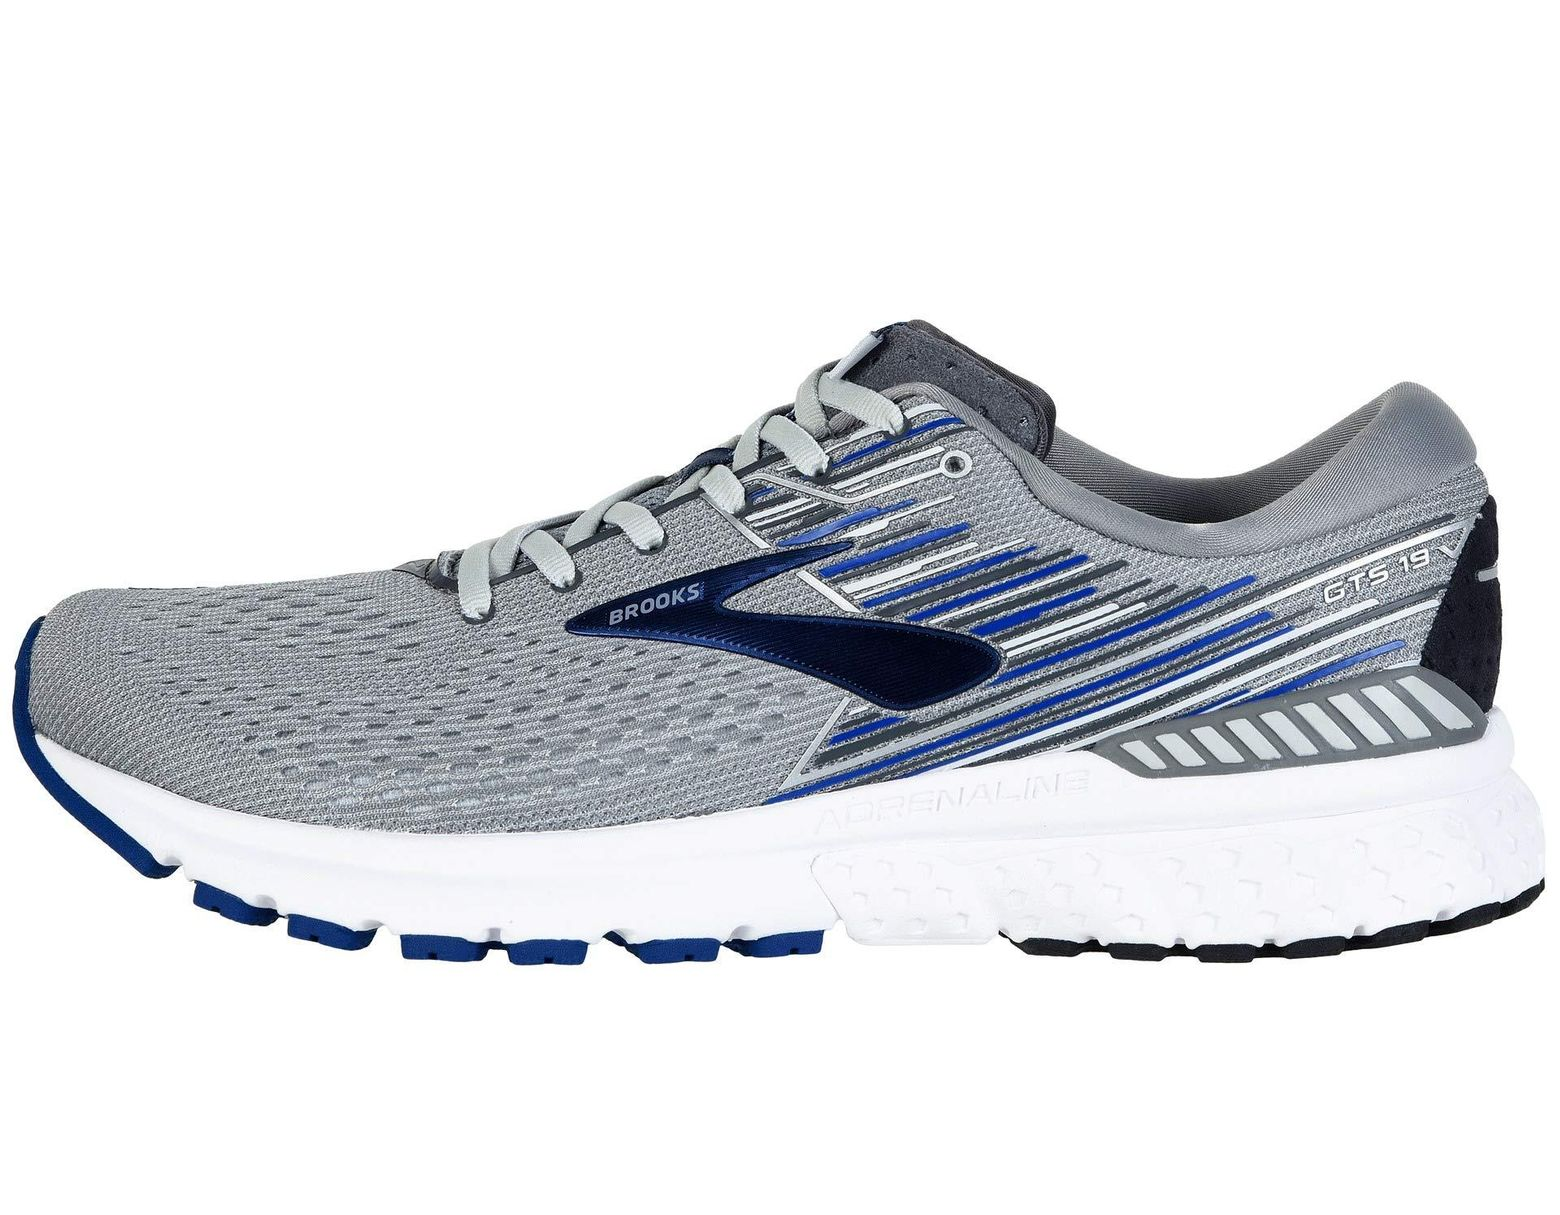 81aa67774e2ee Lyst - Brooks Adrenaline Gts 19 (white grey navy) Men s Running Shoes in  Blue for Men